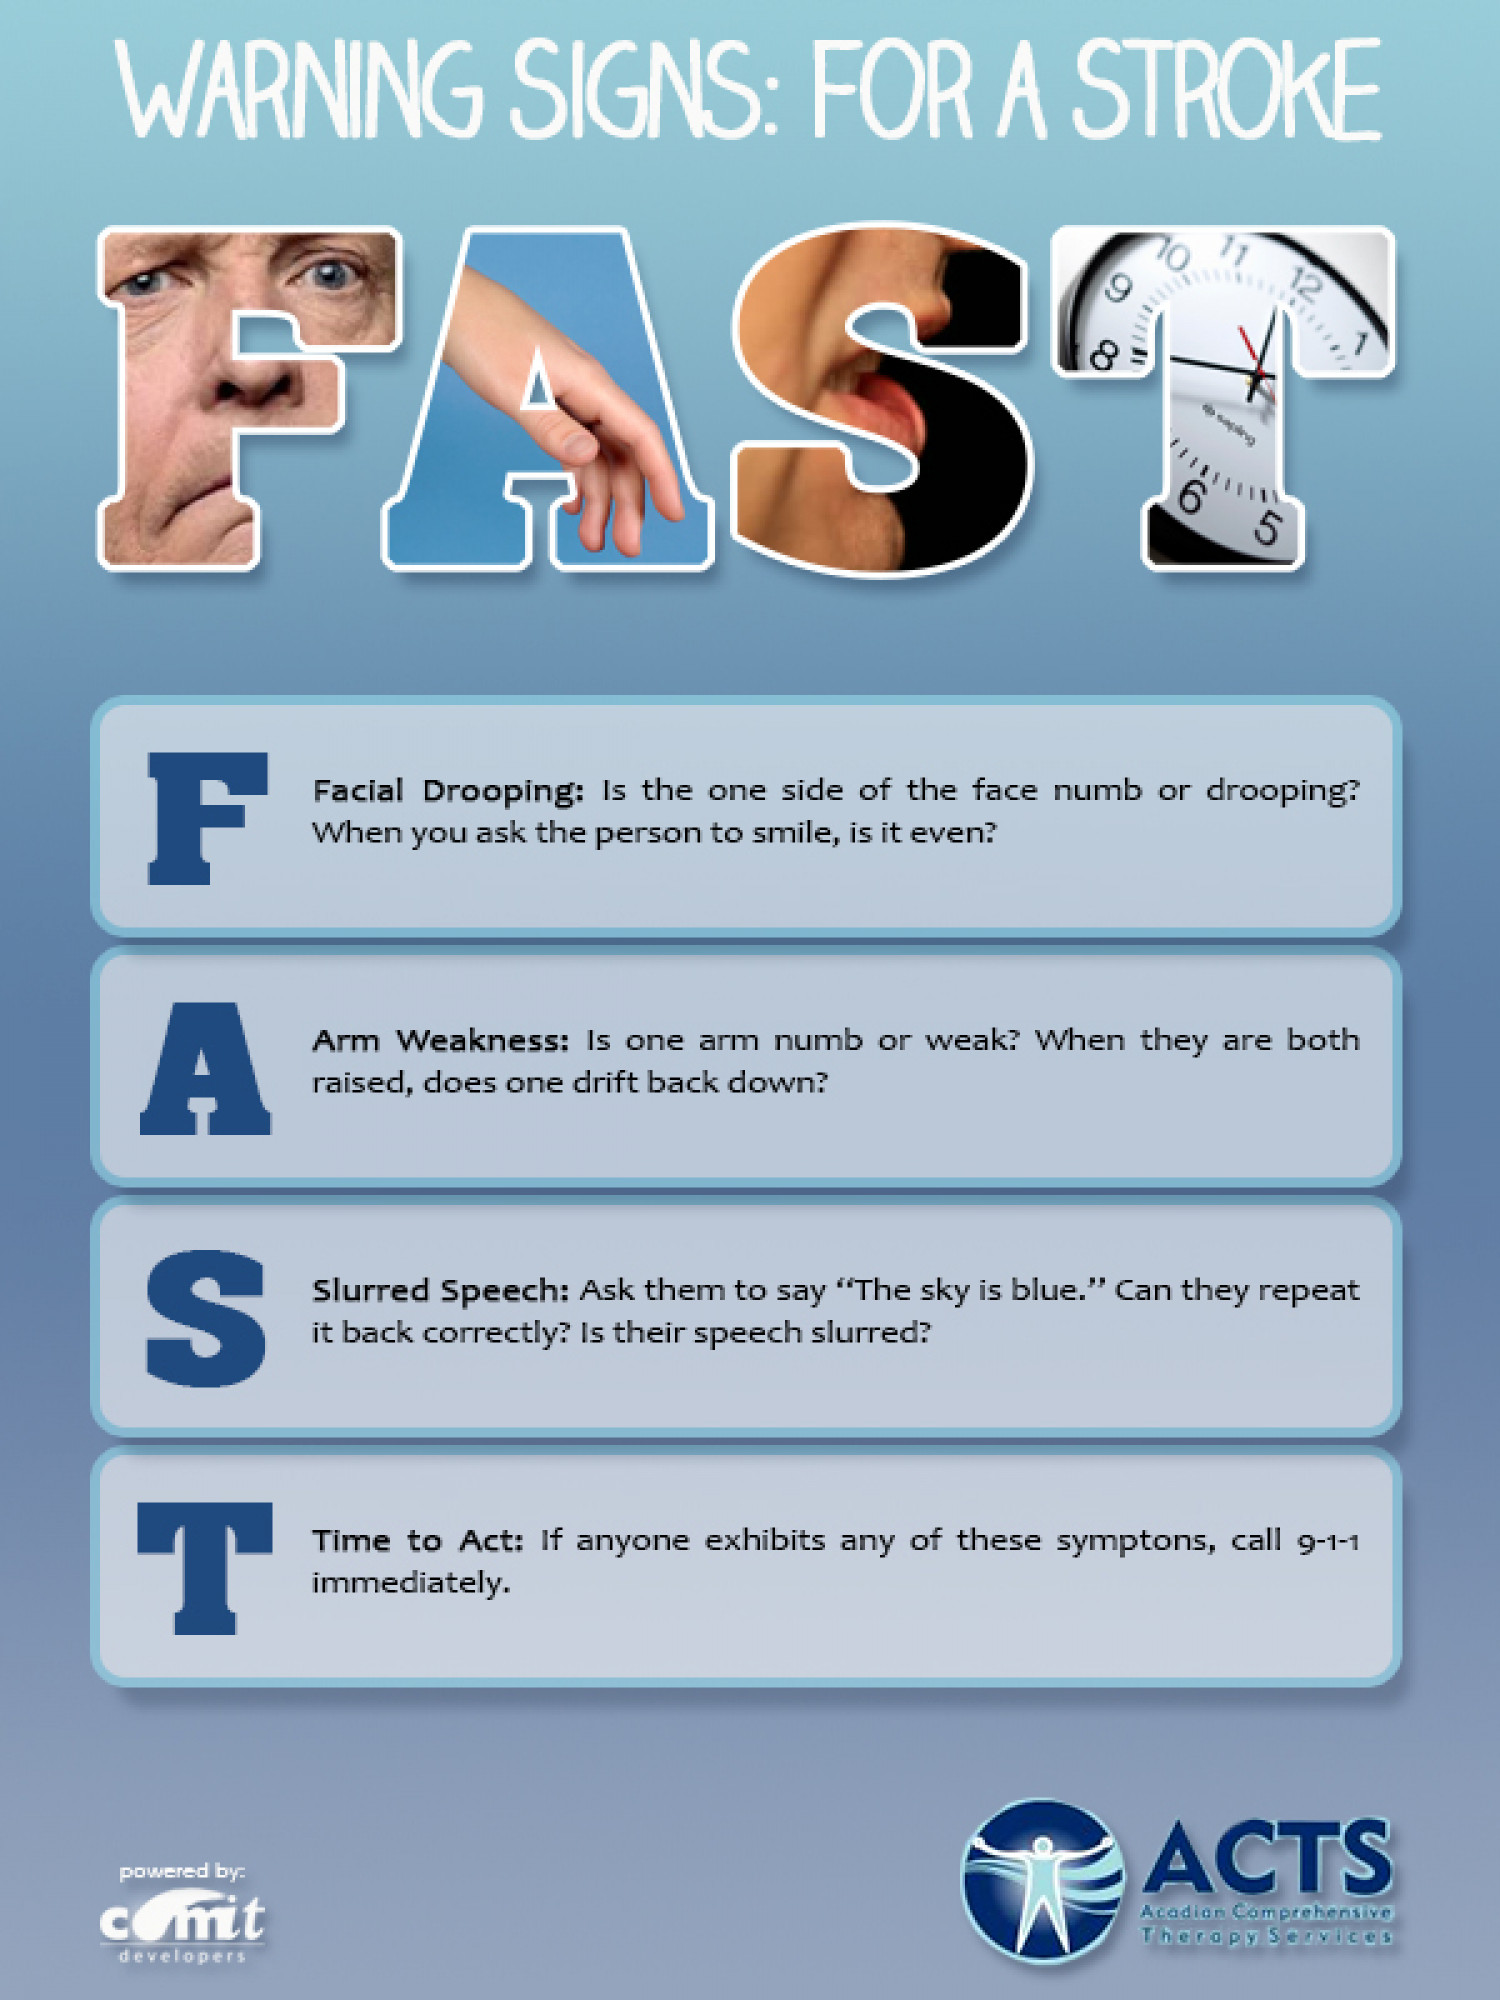 Warning Signs: For a Stroke Infographic